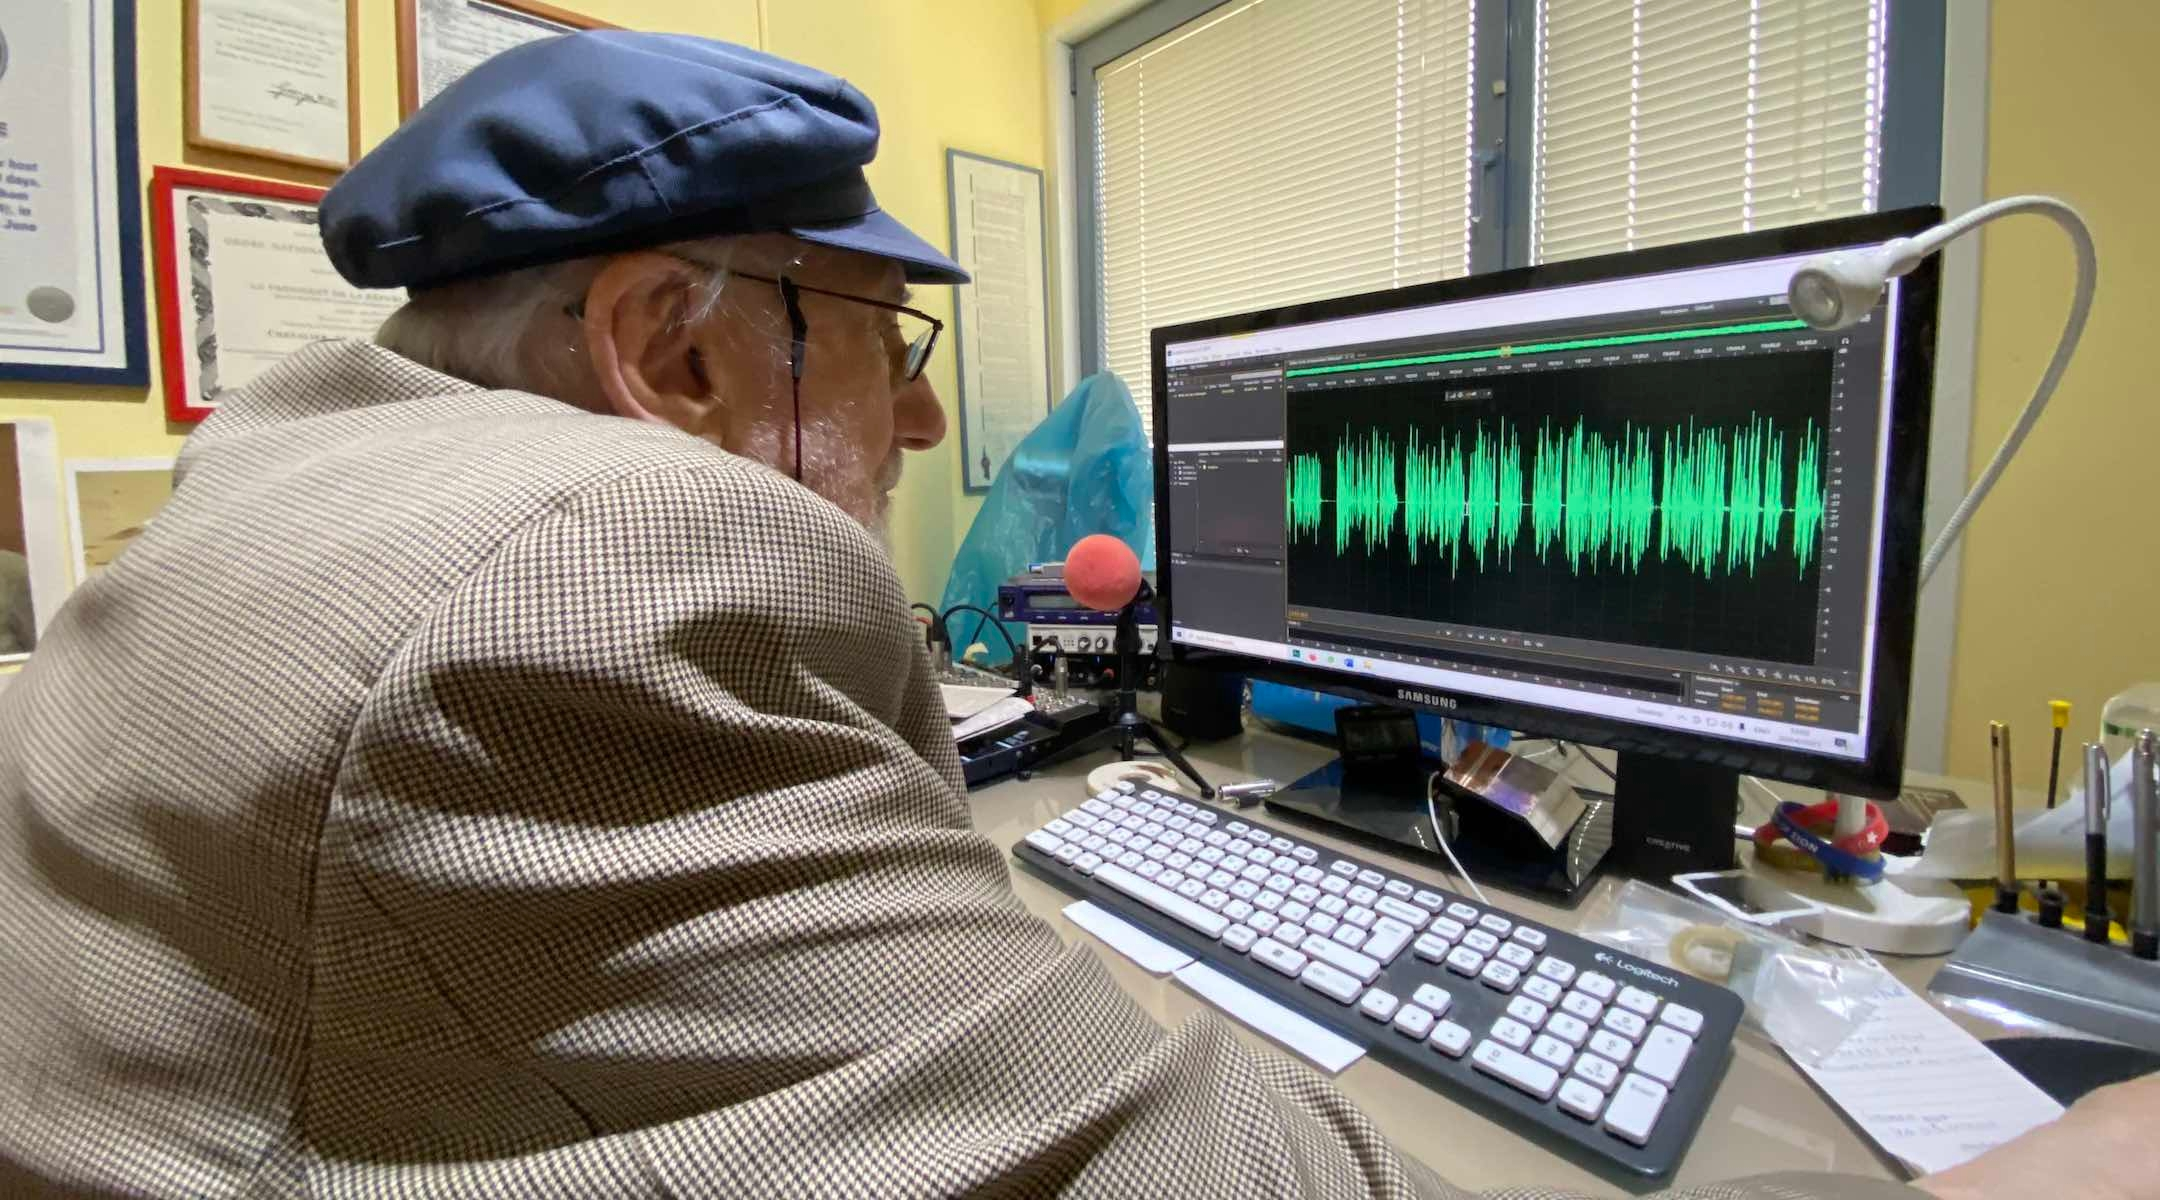 Radio technology has changed since Bingham began his career in the years following World War II, but he edits and uploads his own shows. (Sam Sokol)